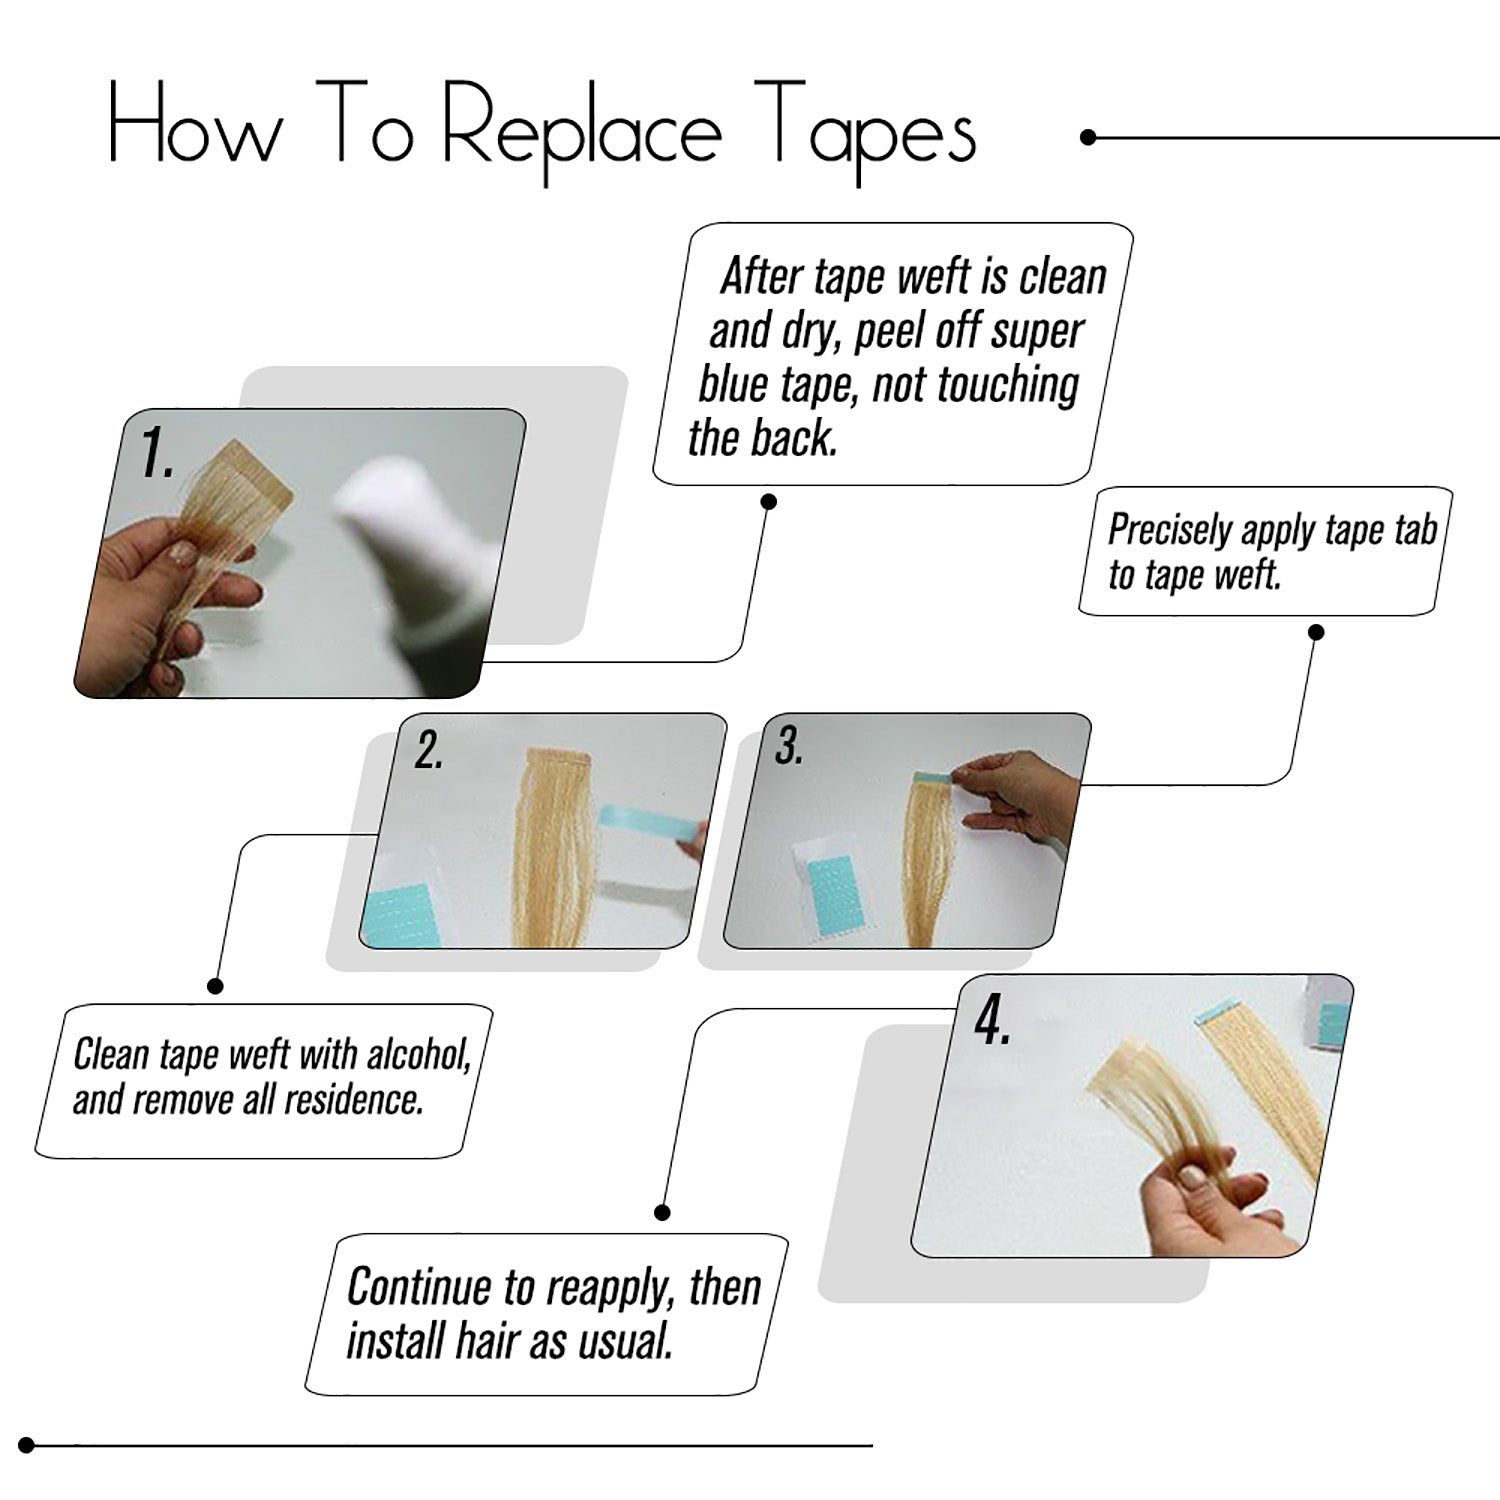 replace tapes